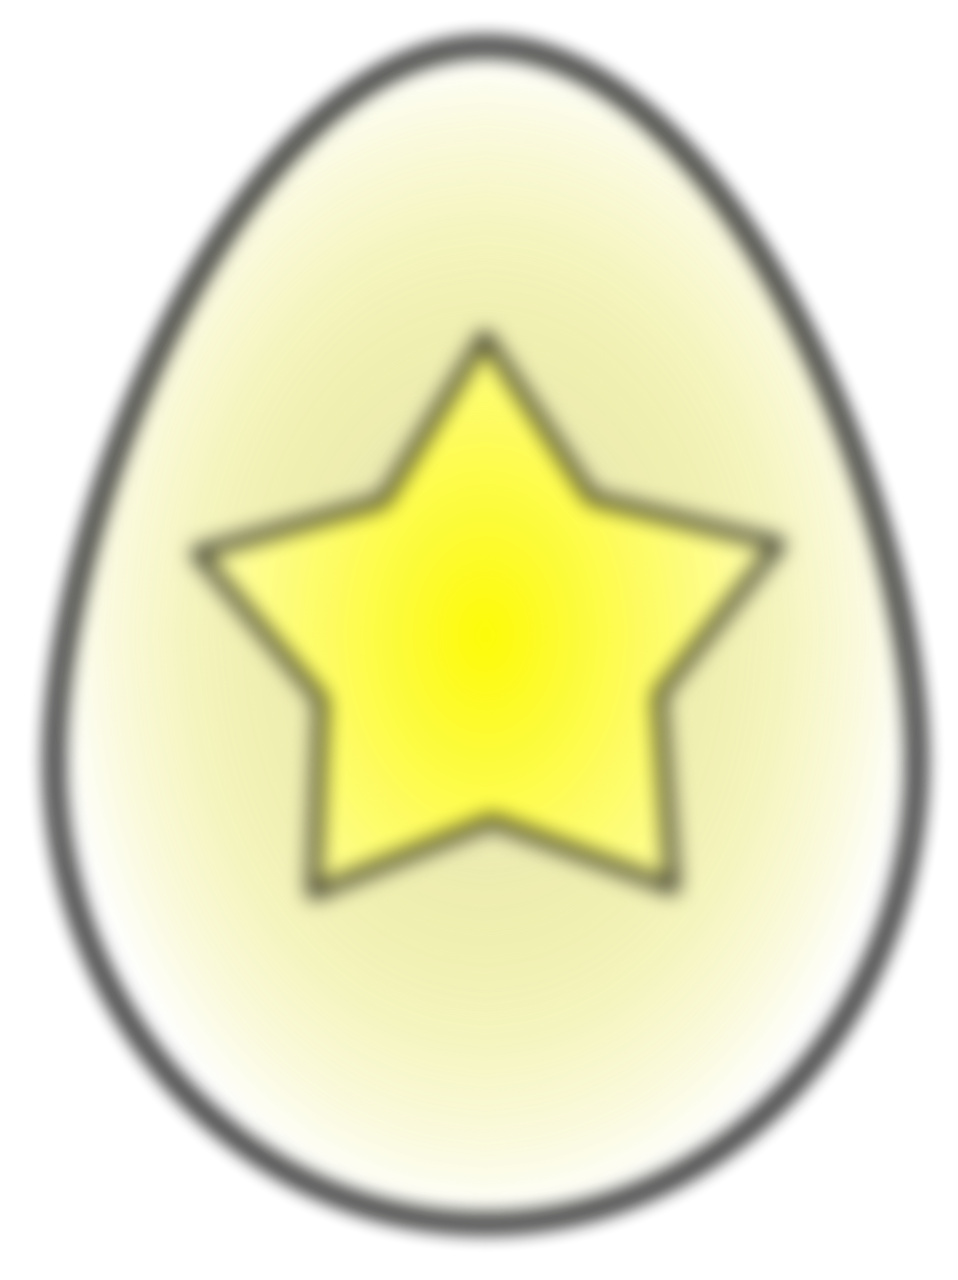 Illustration of an Easter egg painted with a yellow star : Free Stock Photo